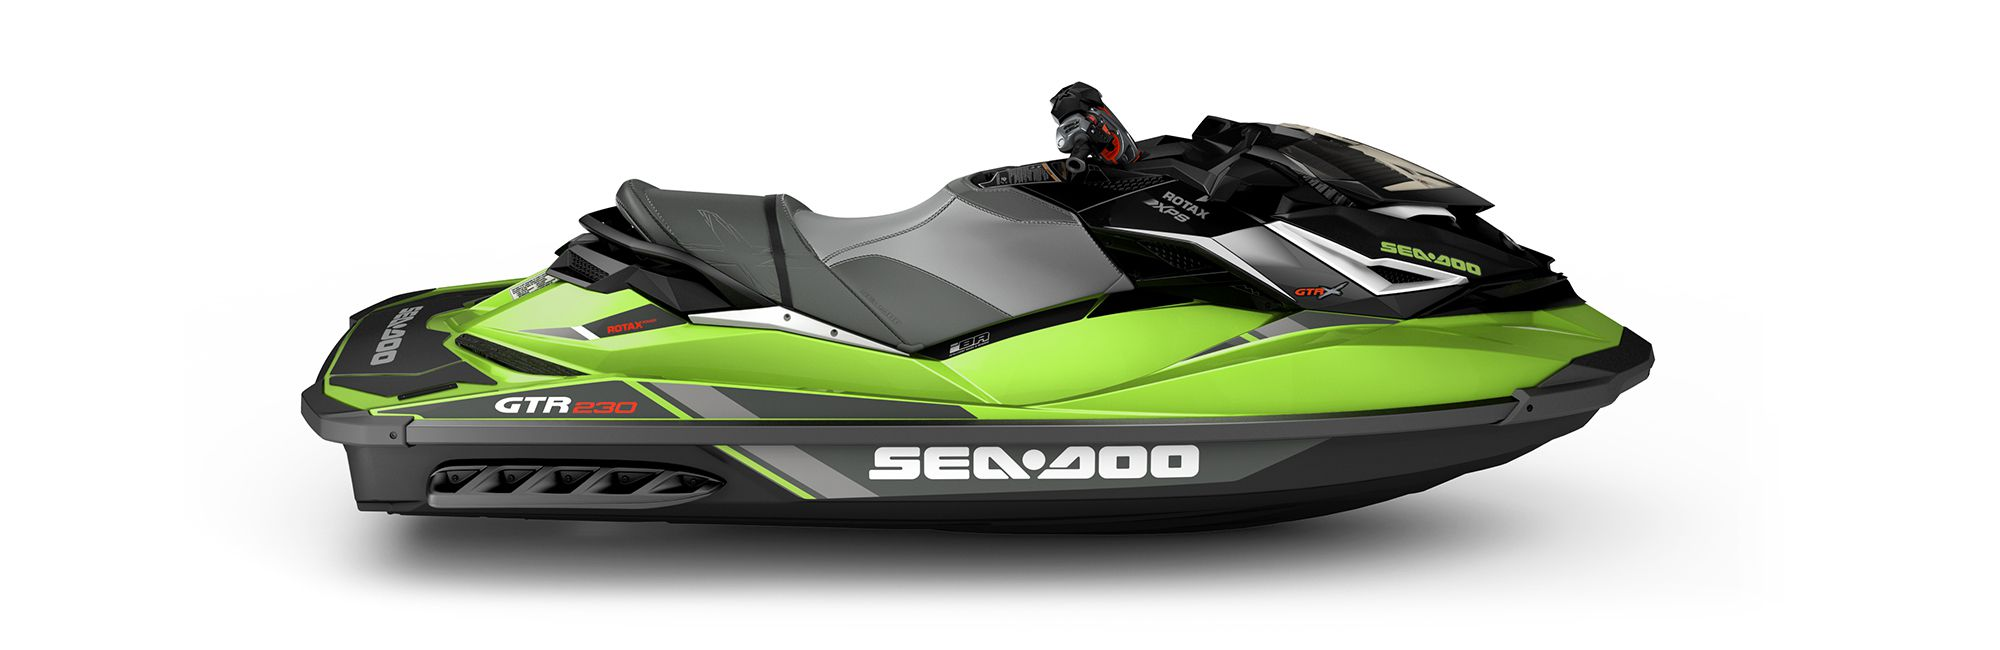 Seadoo gtr 230 x boating international for Ecksofa 230 x 230